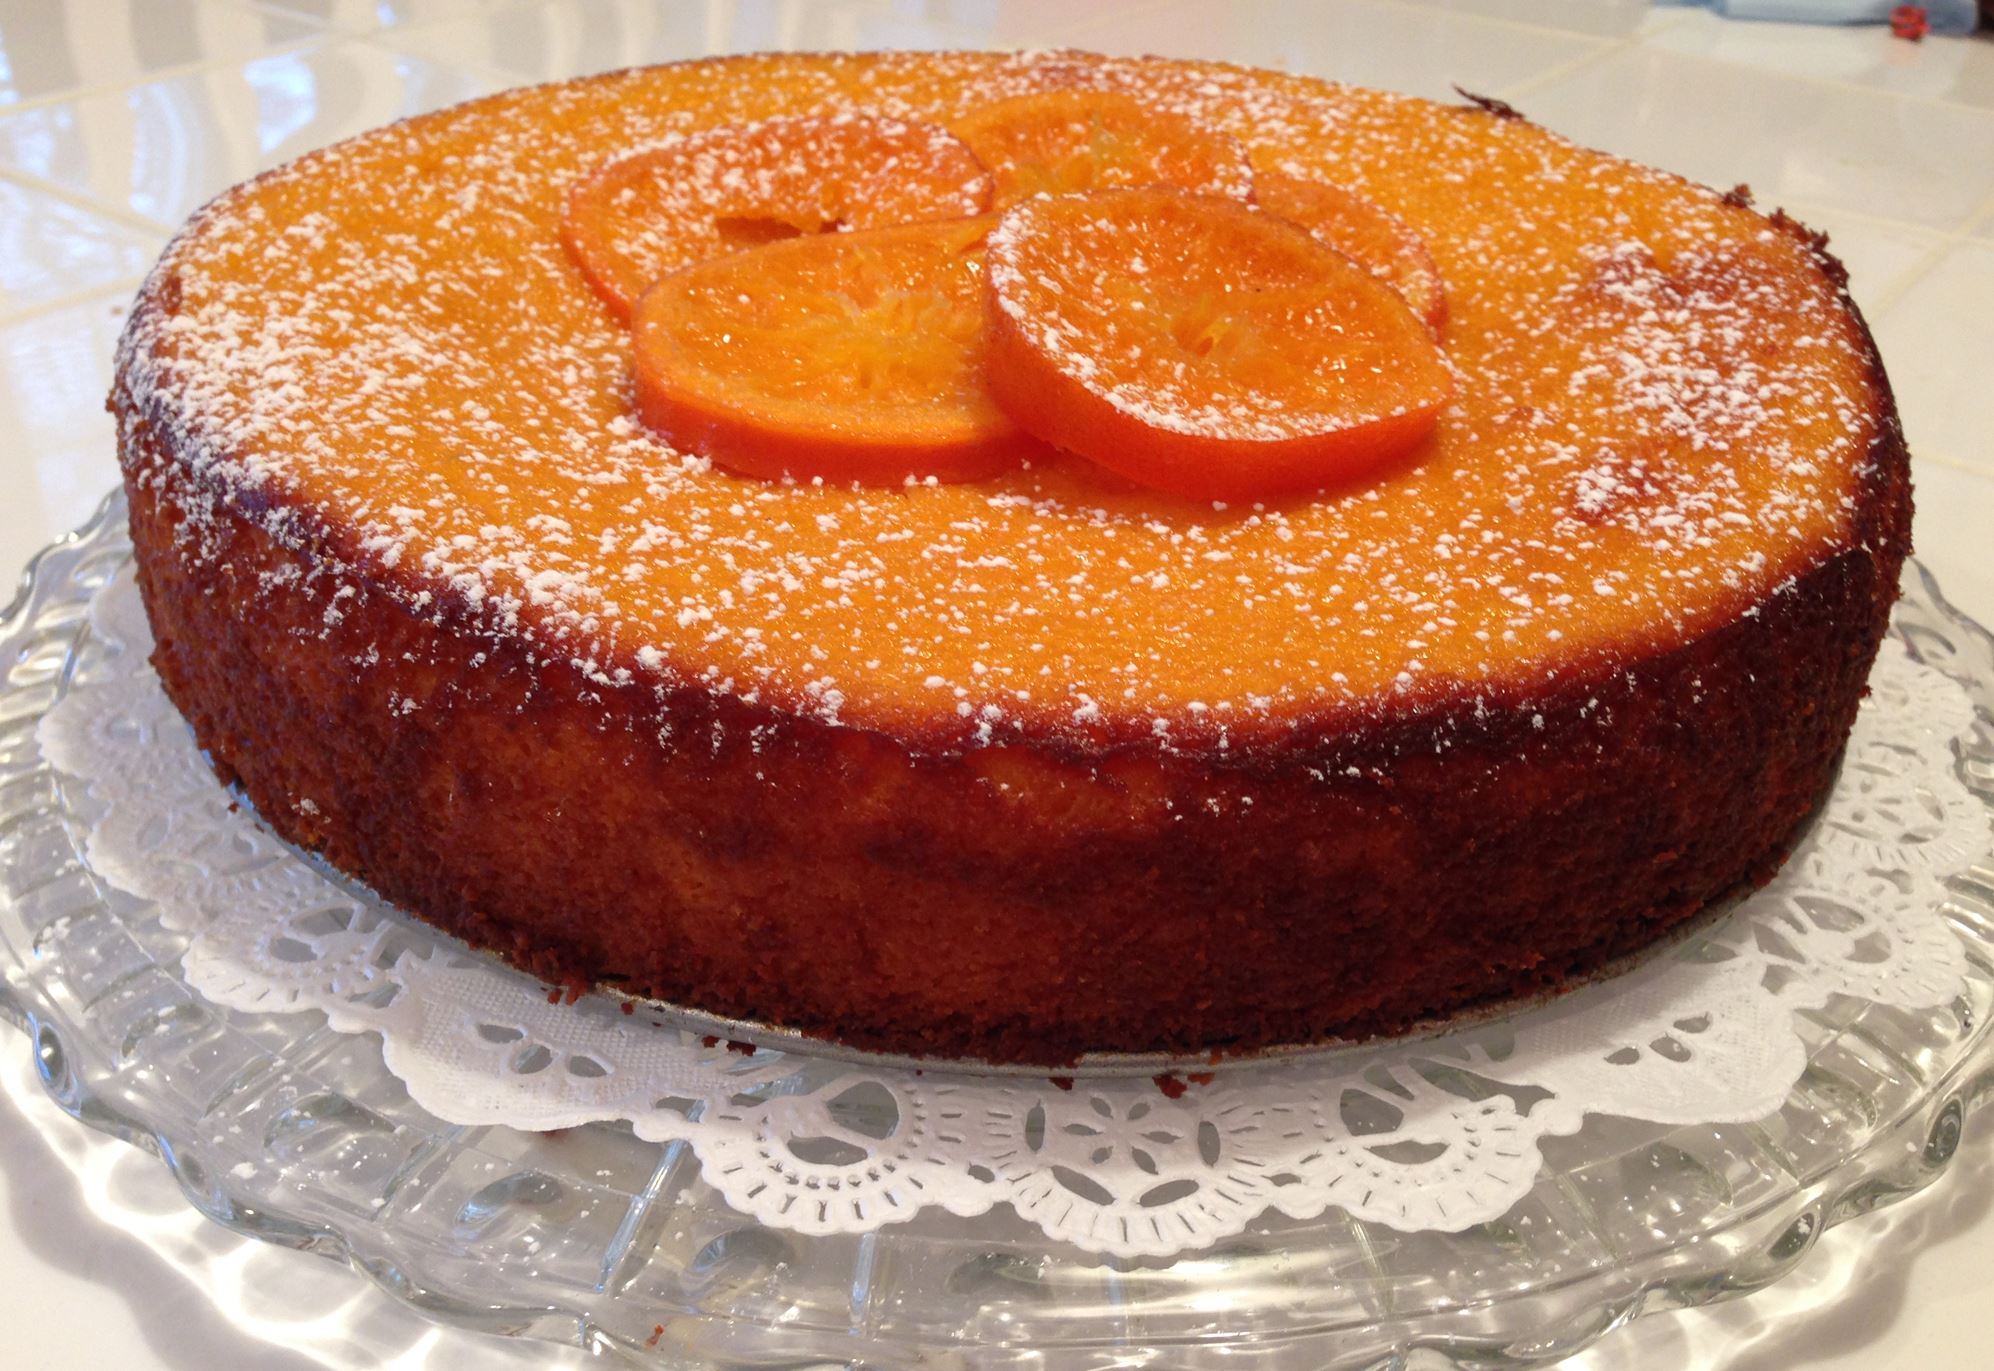 20140124Clementine1 Clementine cake with powdered sugar.